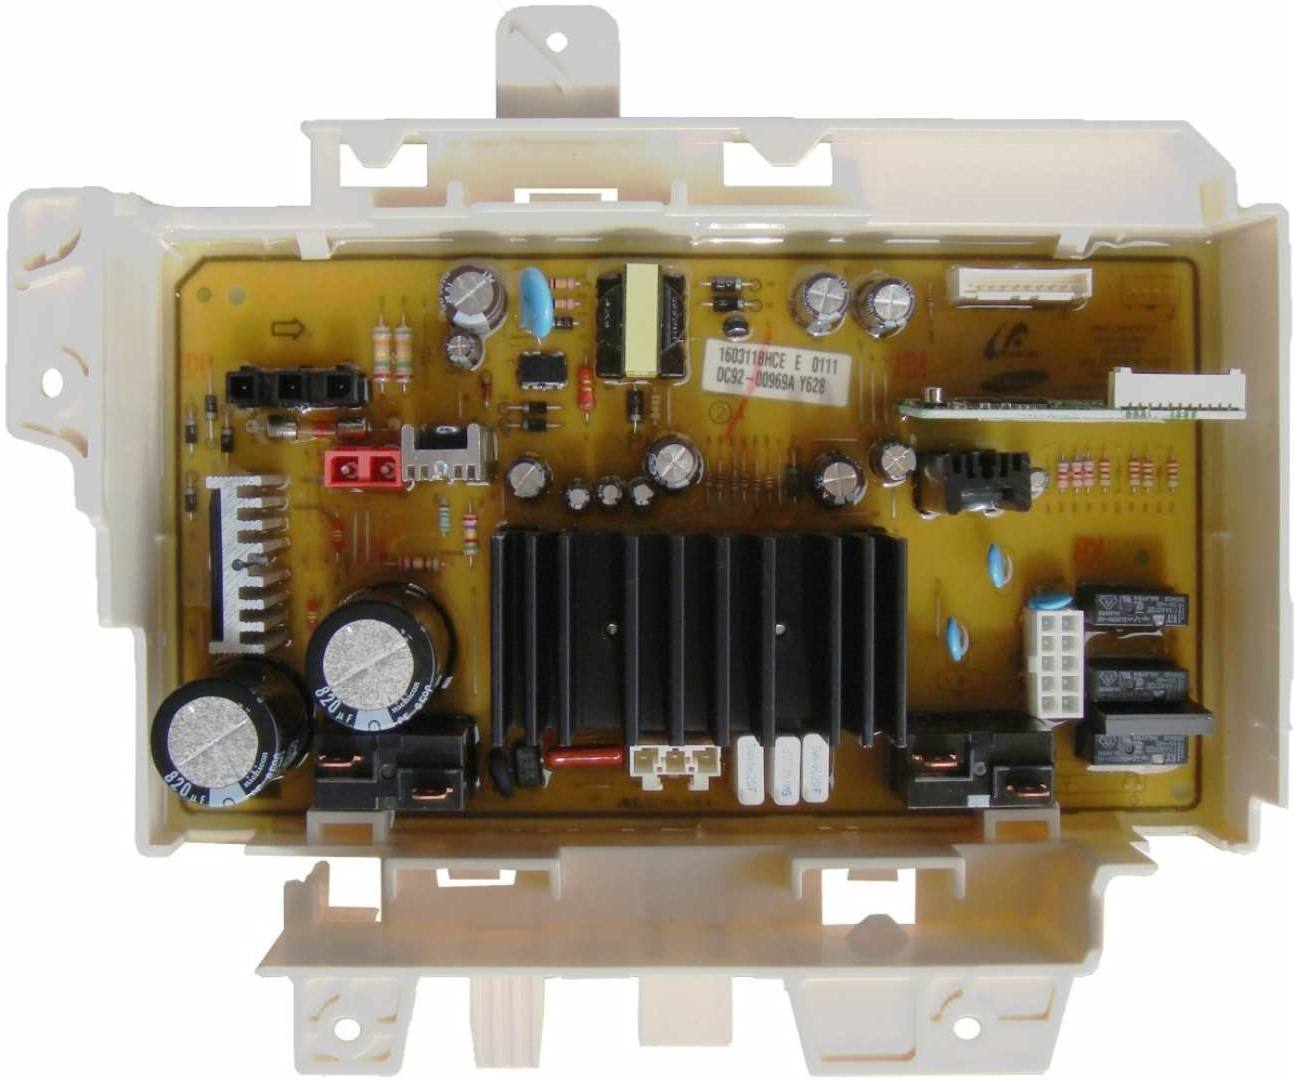 Samsung DC92-00969A Washing Machine Computer Pcb Electronic Board